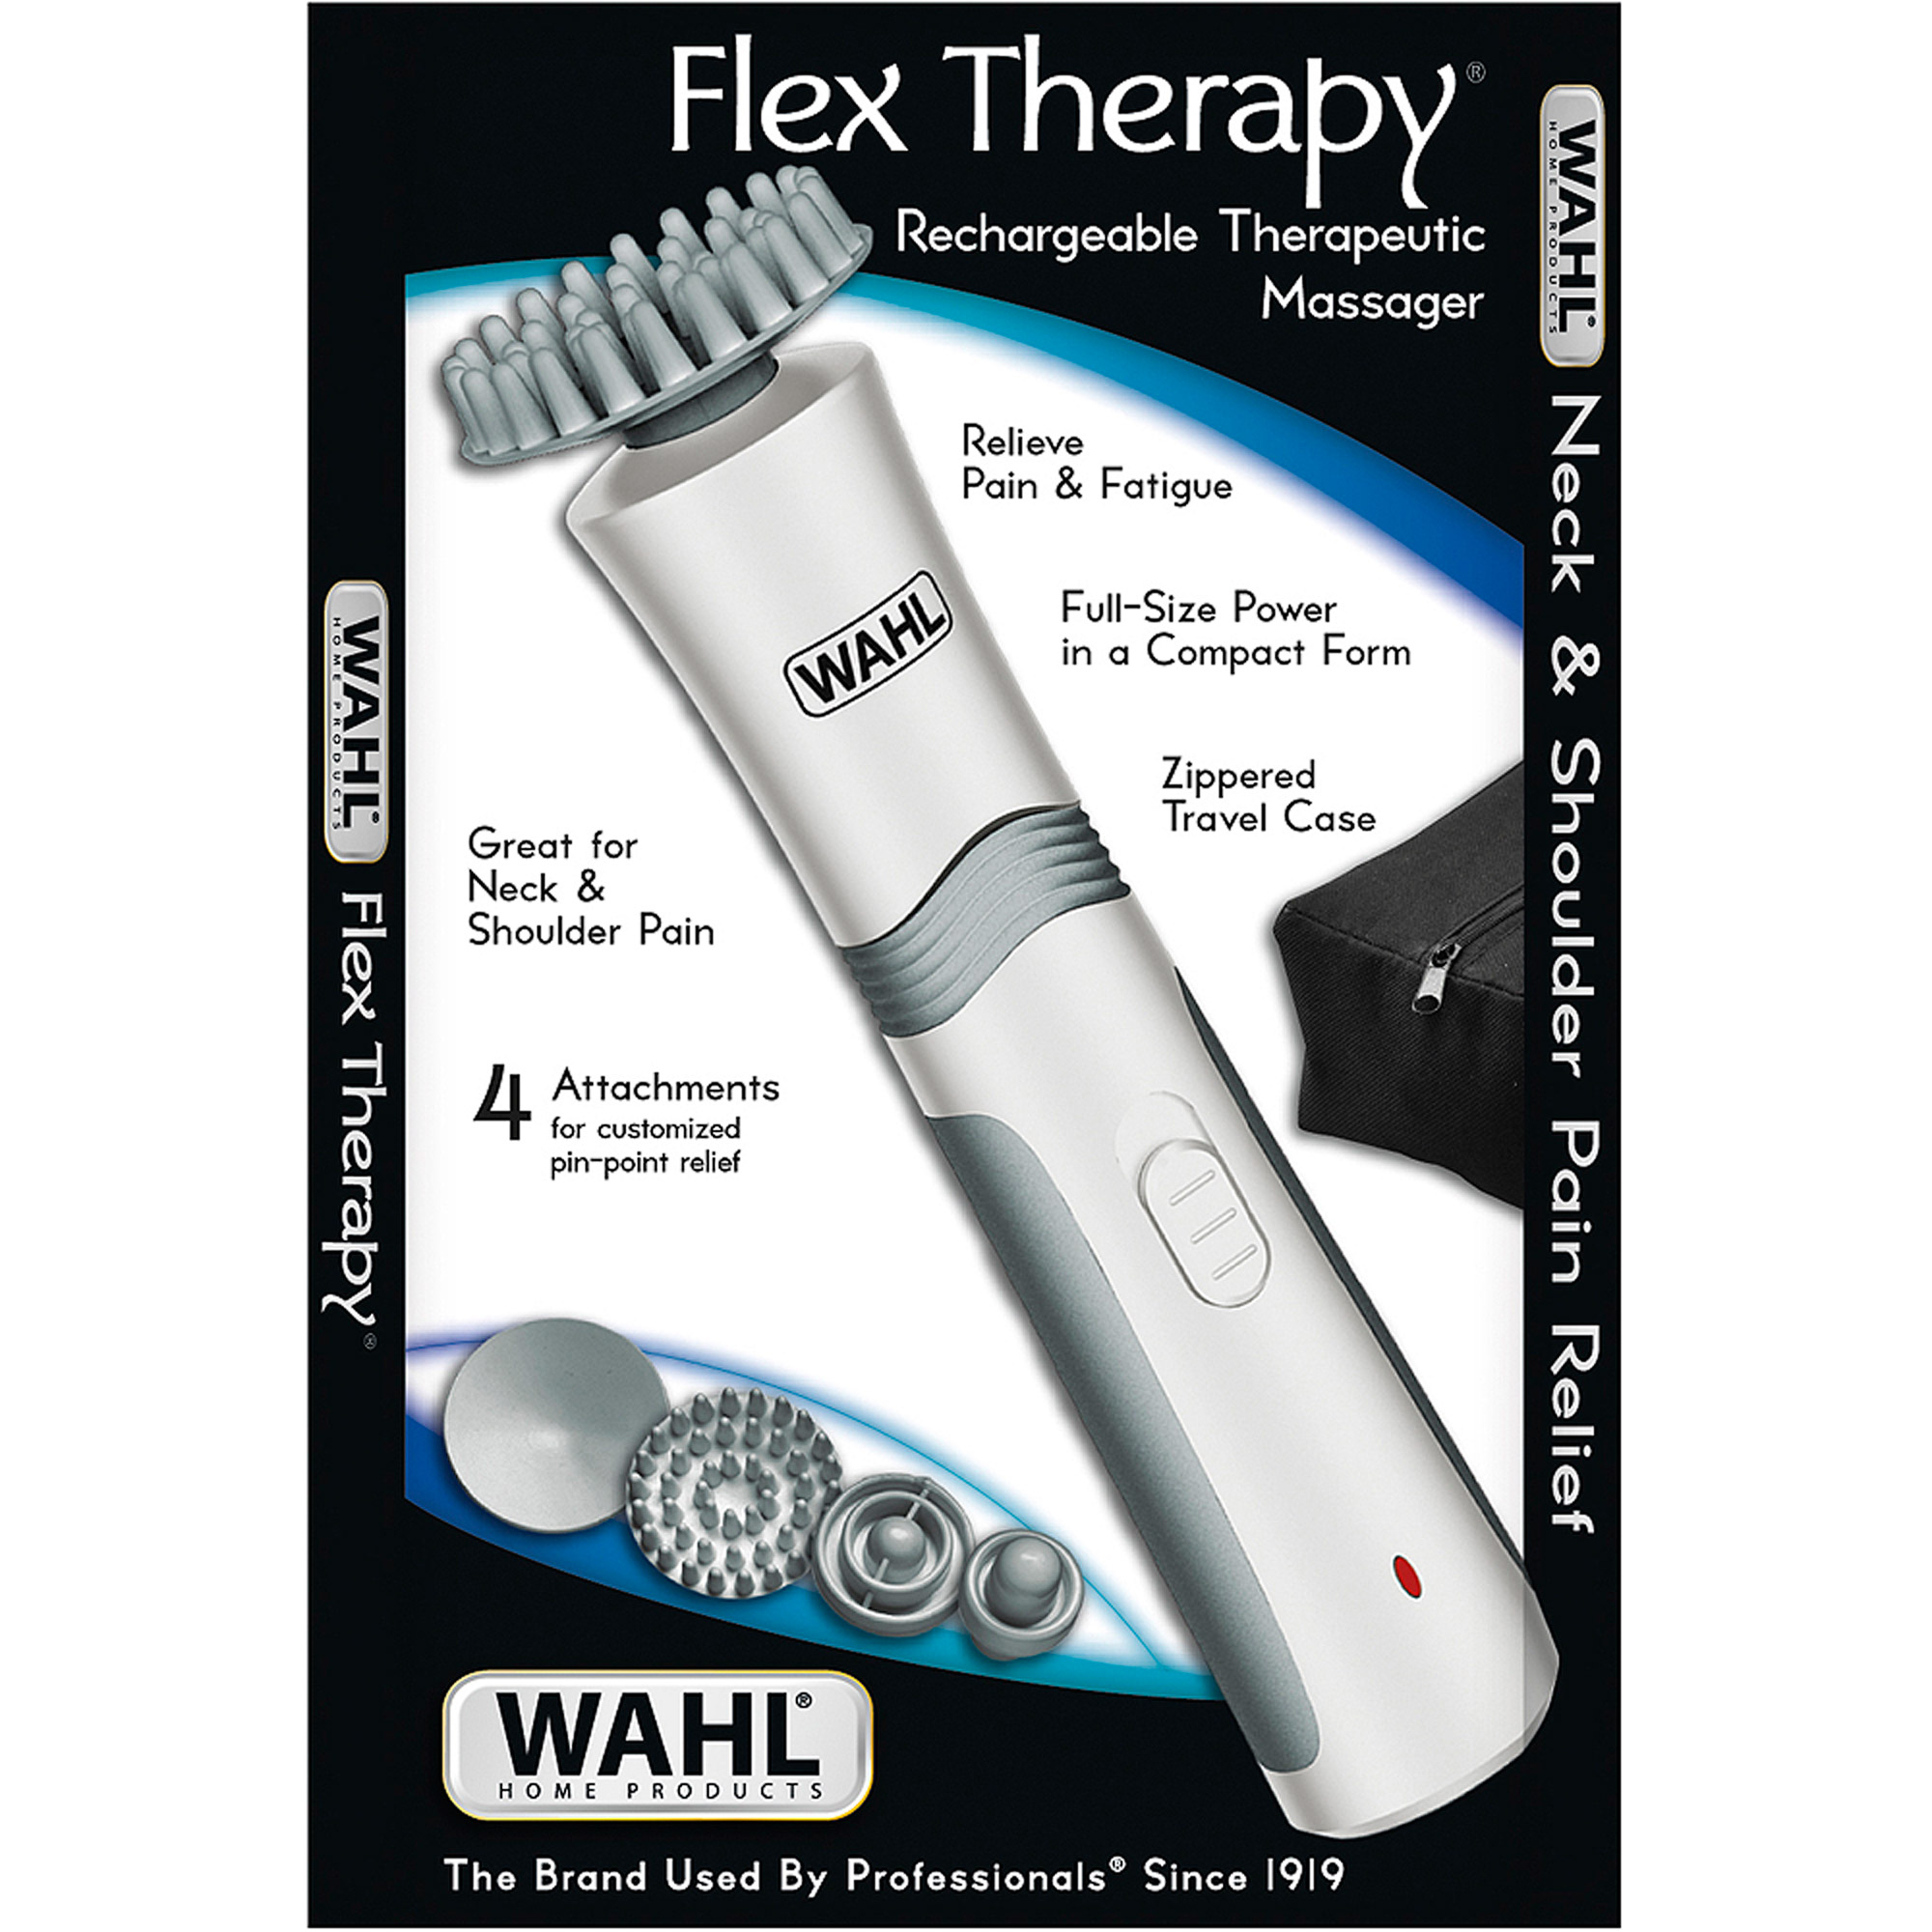 Wahl Flex Therapy Rechargeable Therapeutic Massager, 6 pc